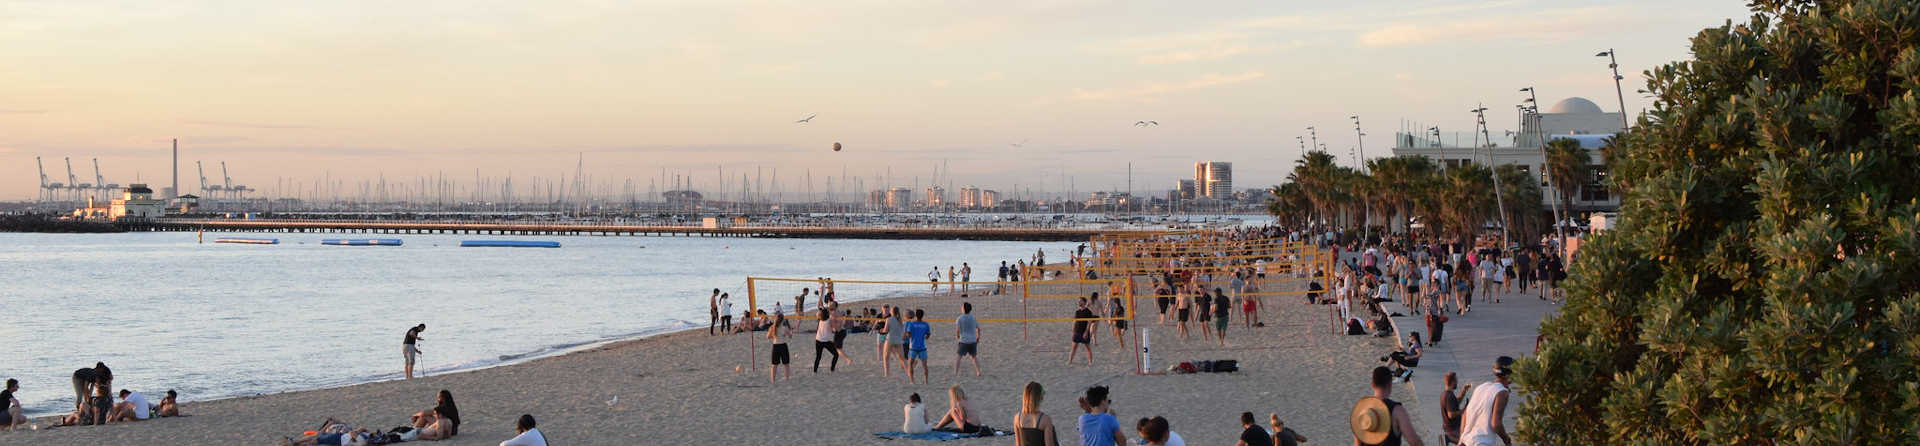 Does Melbourne have a beach?